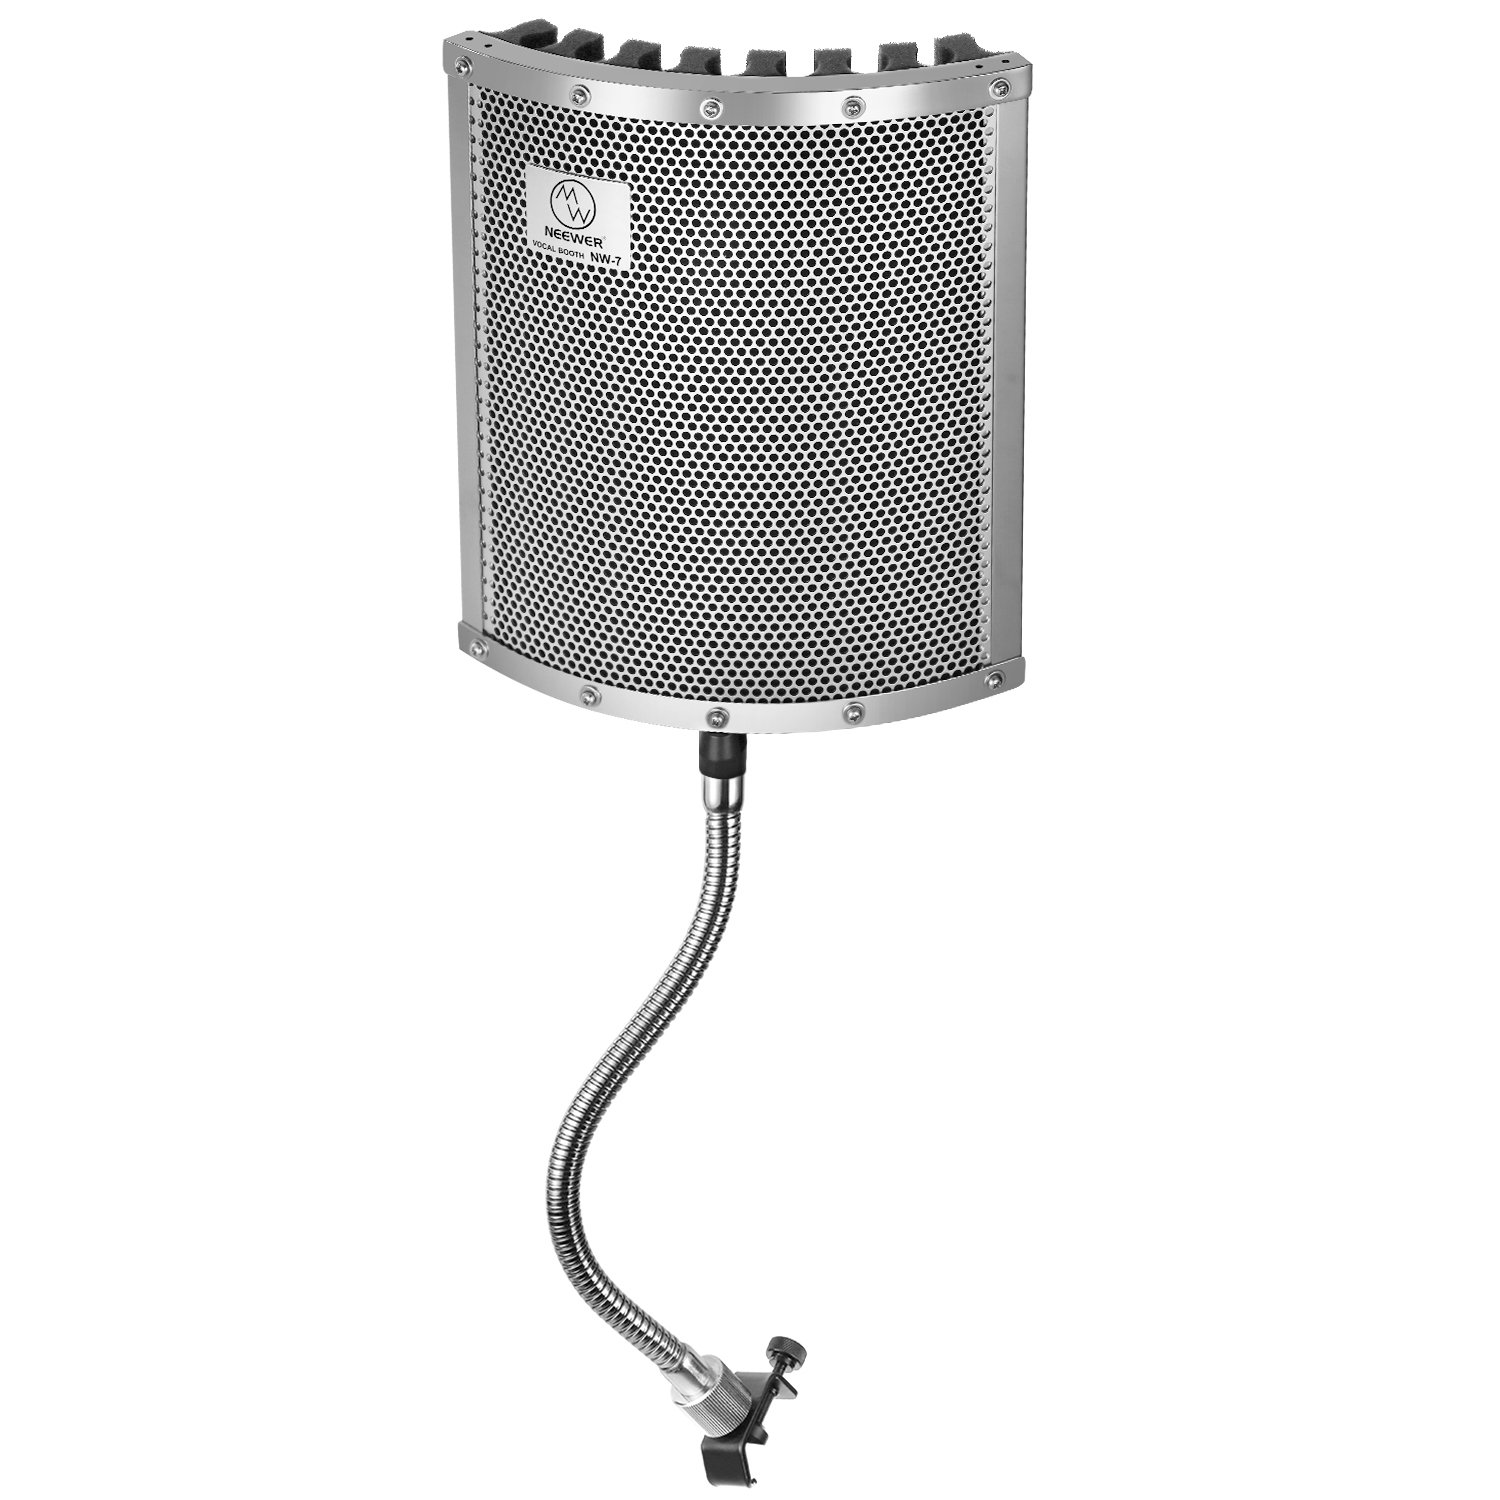 Neewer Lightweight and Portable Isolation Microphone Shield with Gooseneck Can be Used on Vocals, Drums, Guitar, Woodwinds or Any Acoustic Instrument